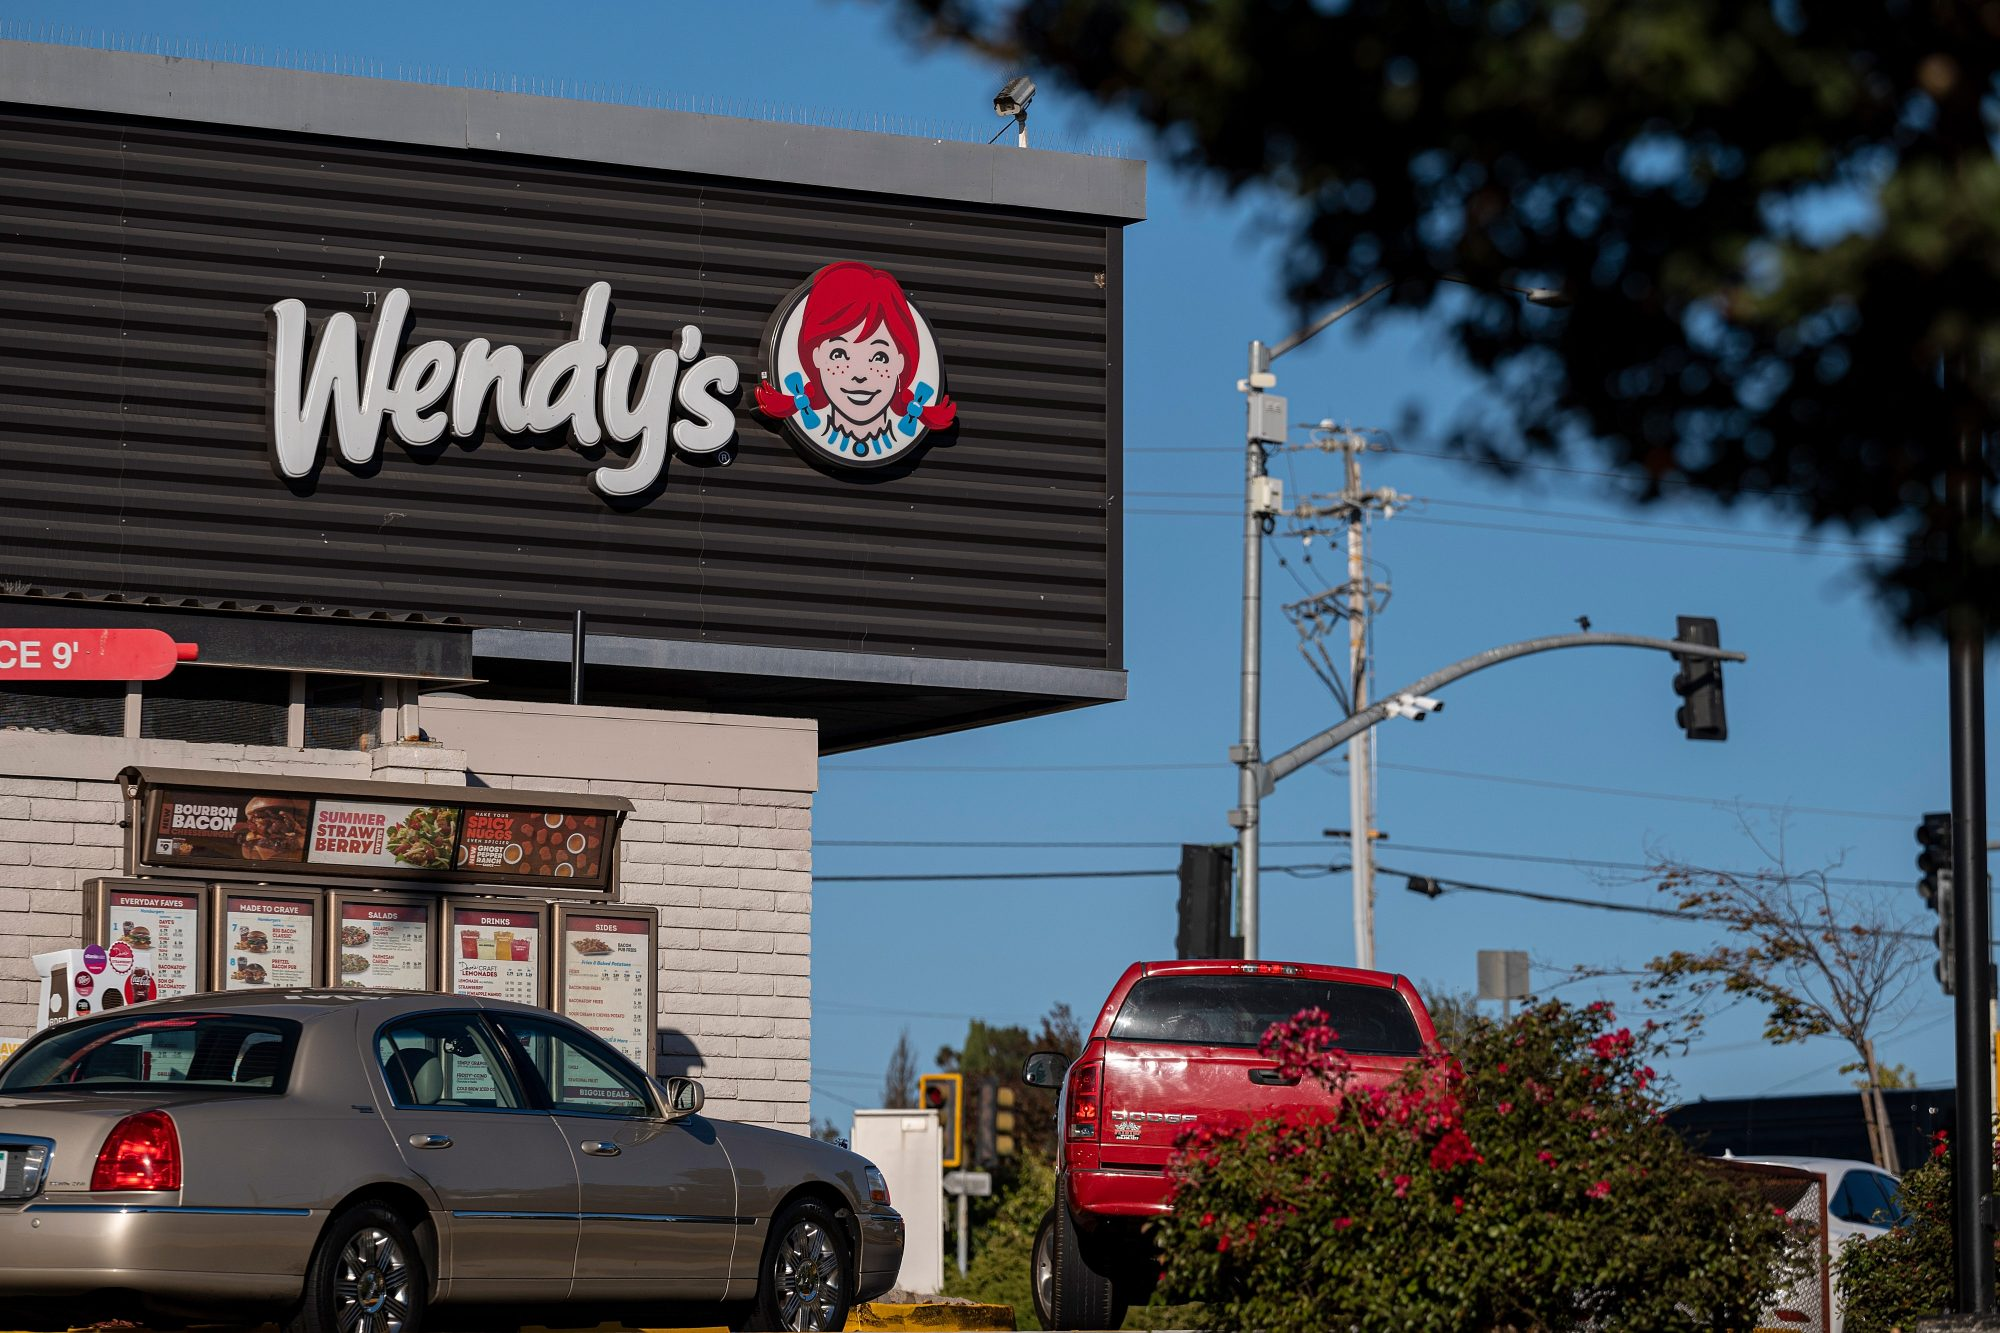 Wendy's Exterior Drive-thru Line with Cars